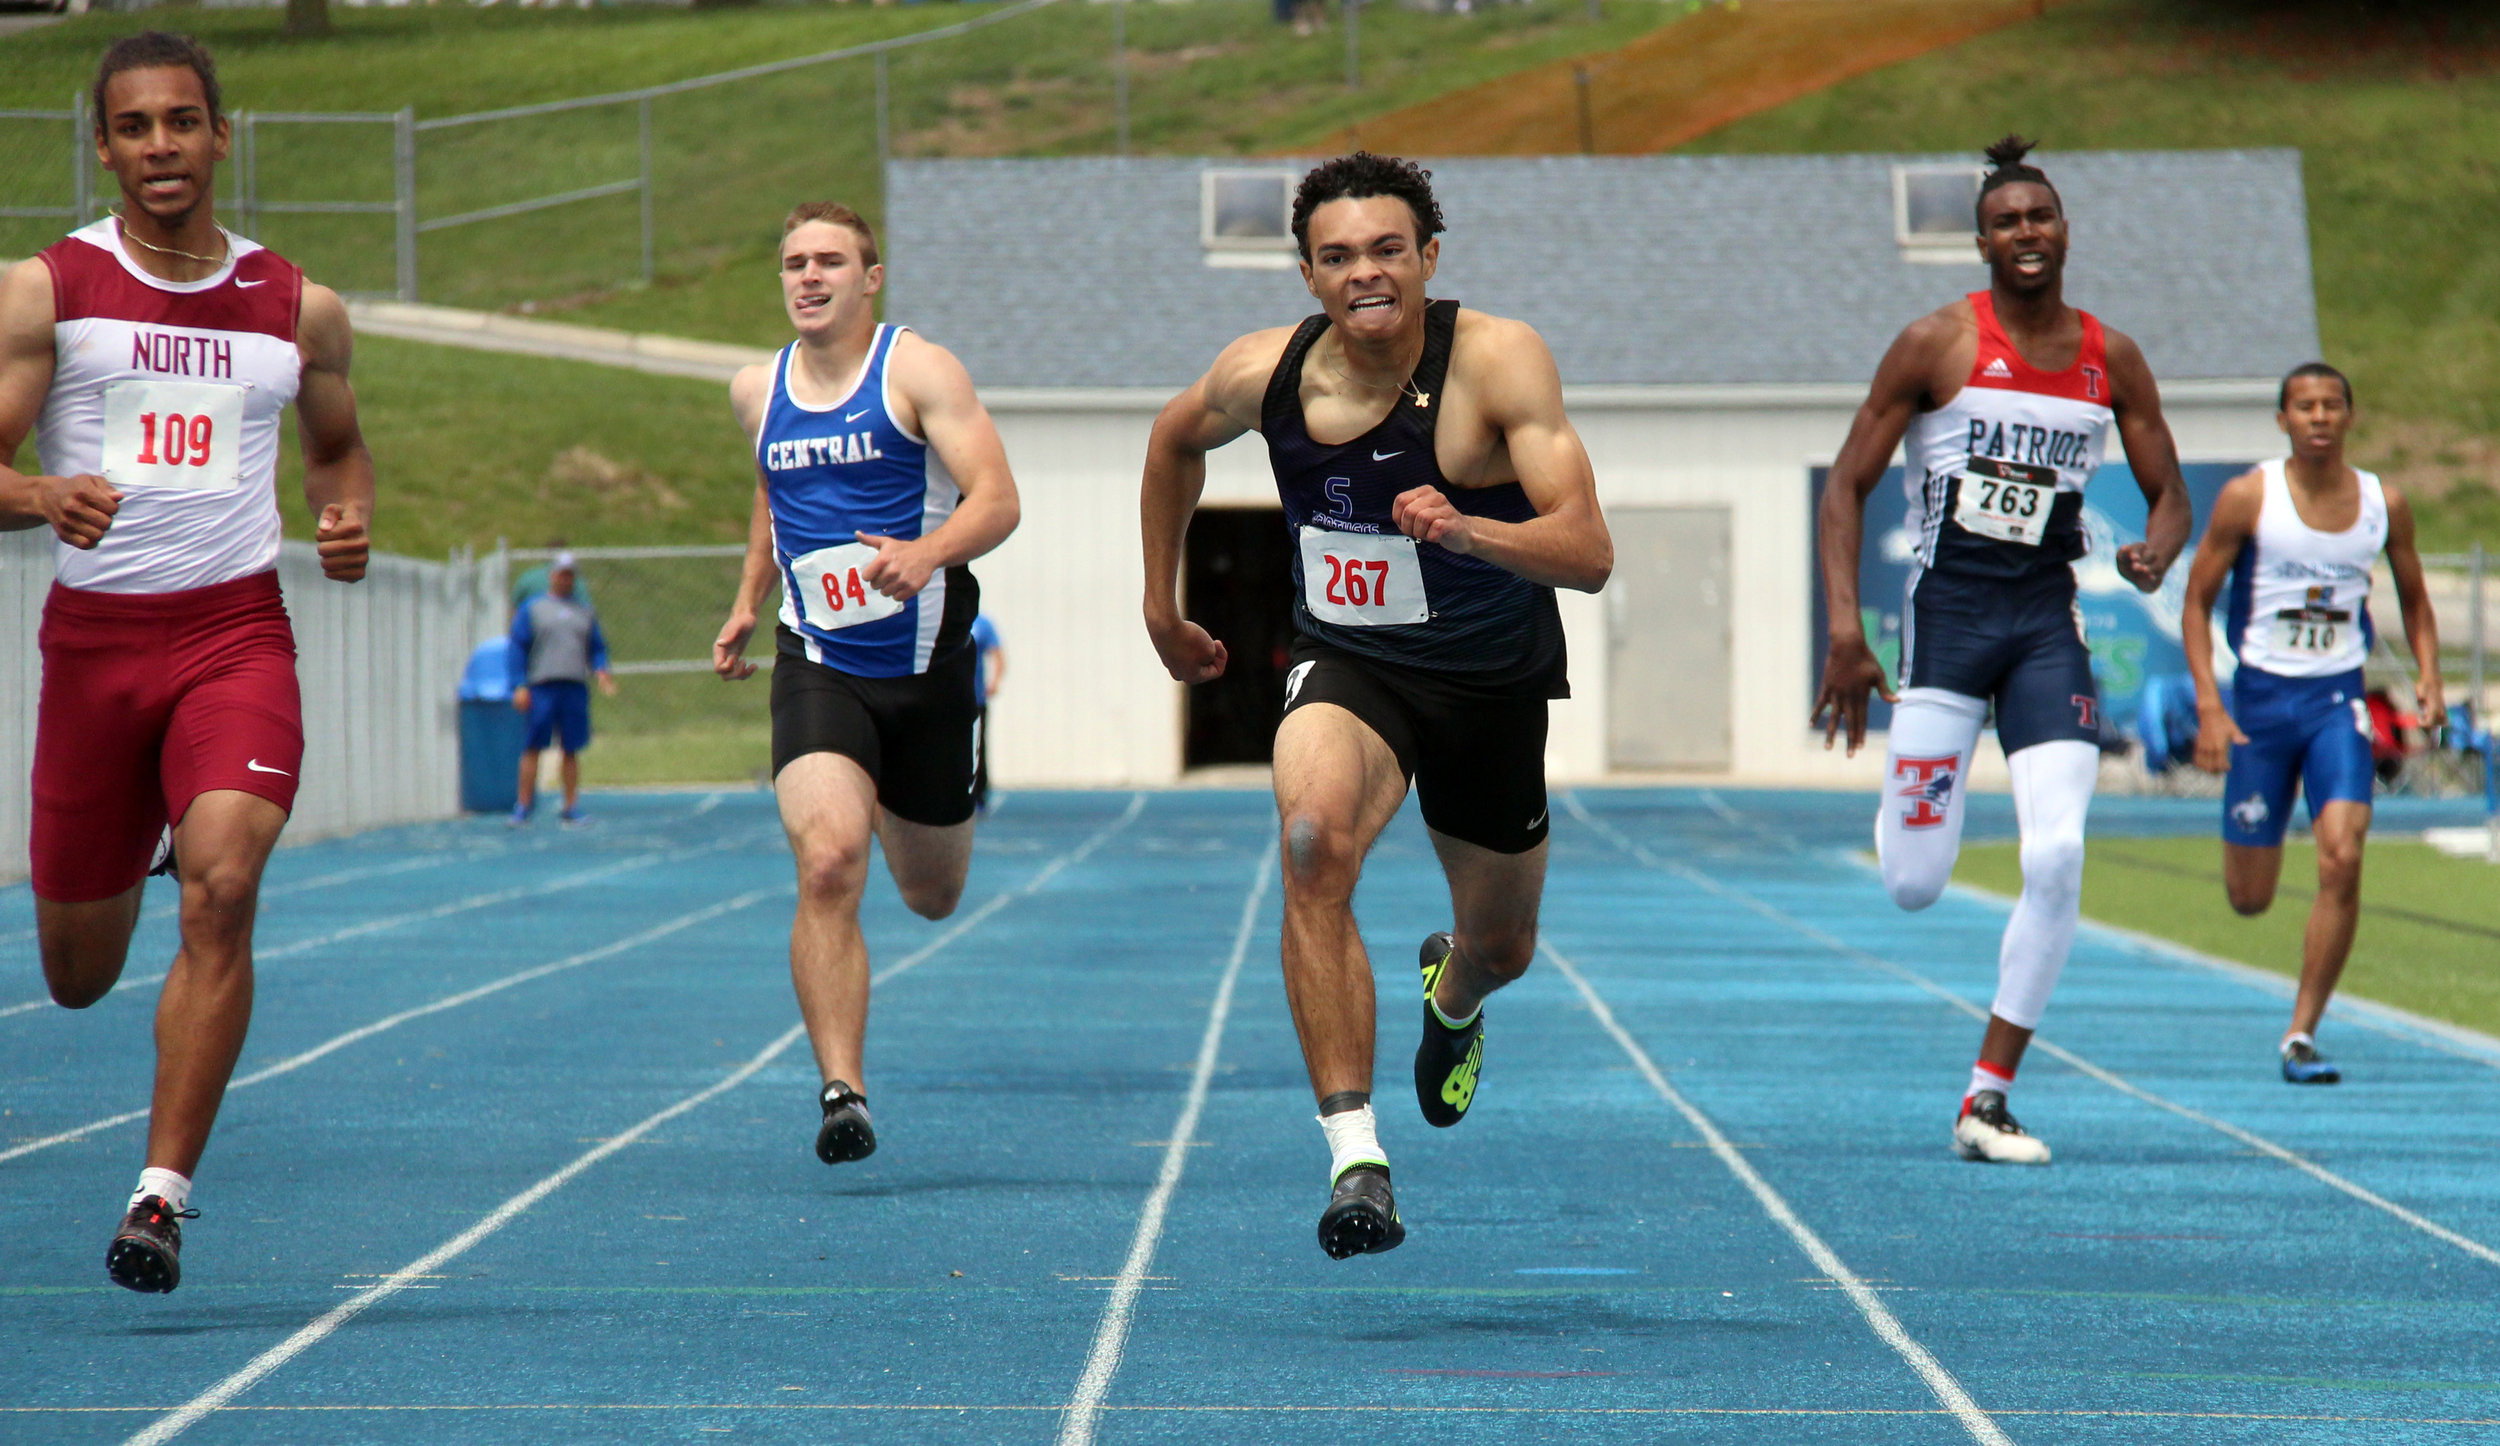 ROSS MARTIN/Citizen photo Park Hill South freshman Chris Dupree pushes to the finish line of the Class 5 Sectional 4 400-meter run Saturday, May 20 at Blue Springs South High School in Blue Springs, Mo.